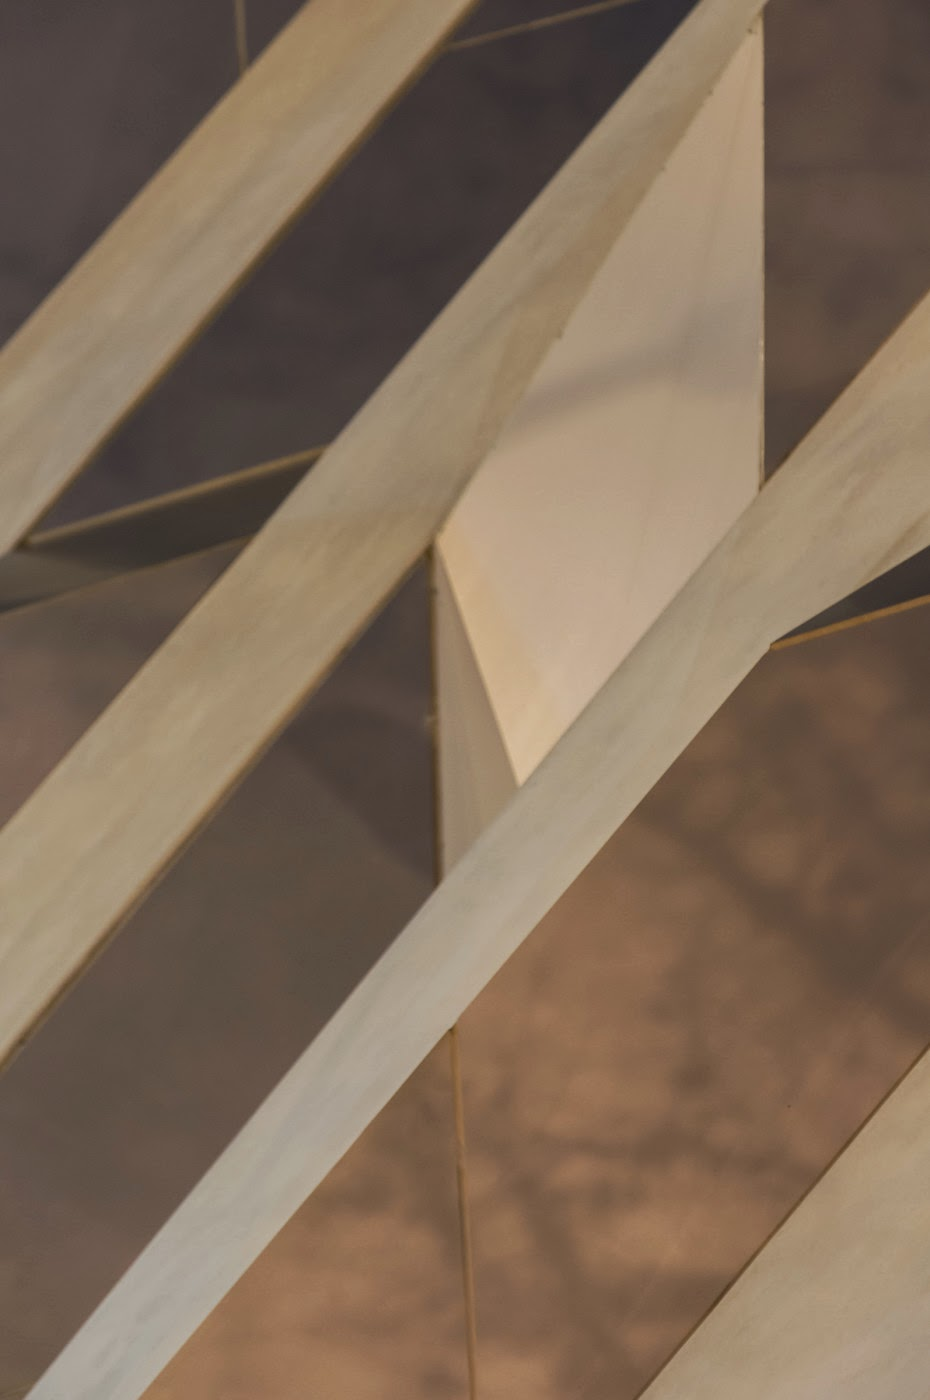 New, modern, postmodern, postmodernist, post modern, architecture, architects, architectural, façade, detail, abstraction, abstractional, tim Macauley, anu, the light monkey collective, stunning, amazing, Canberra, school of science, chemical research, night, lyons , lyons architects, Australian